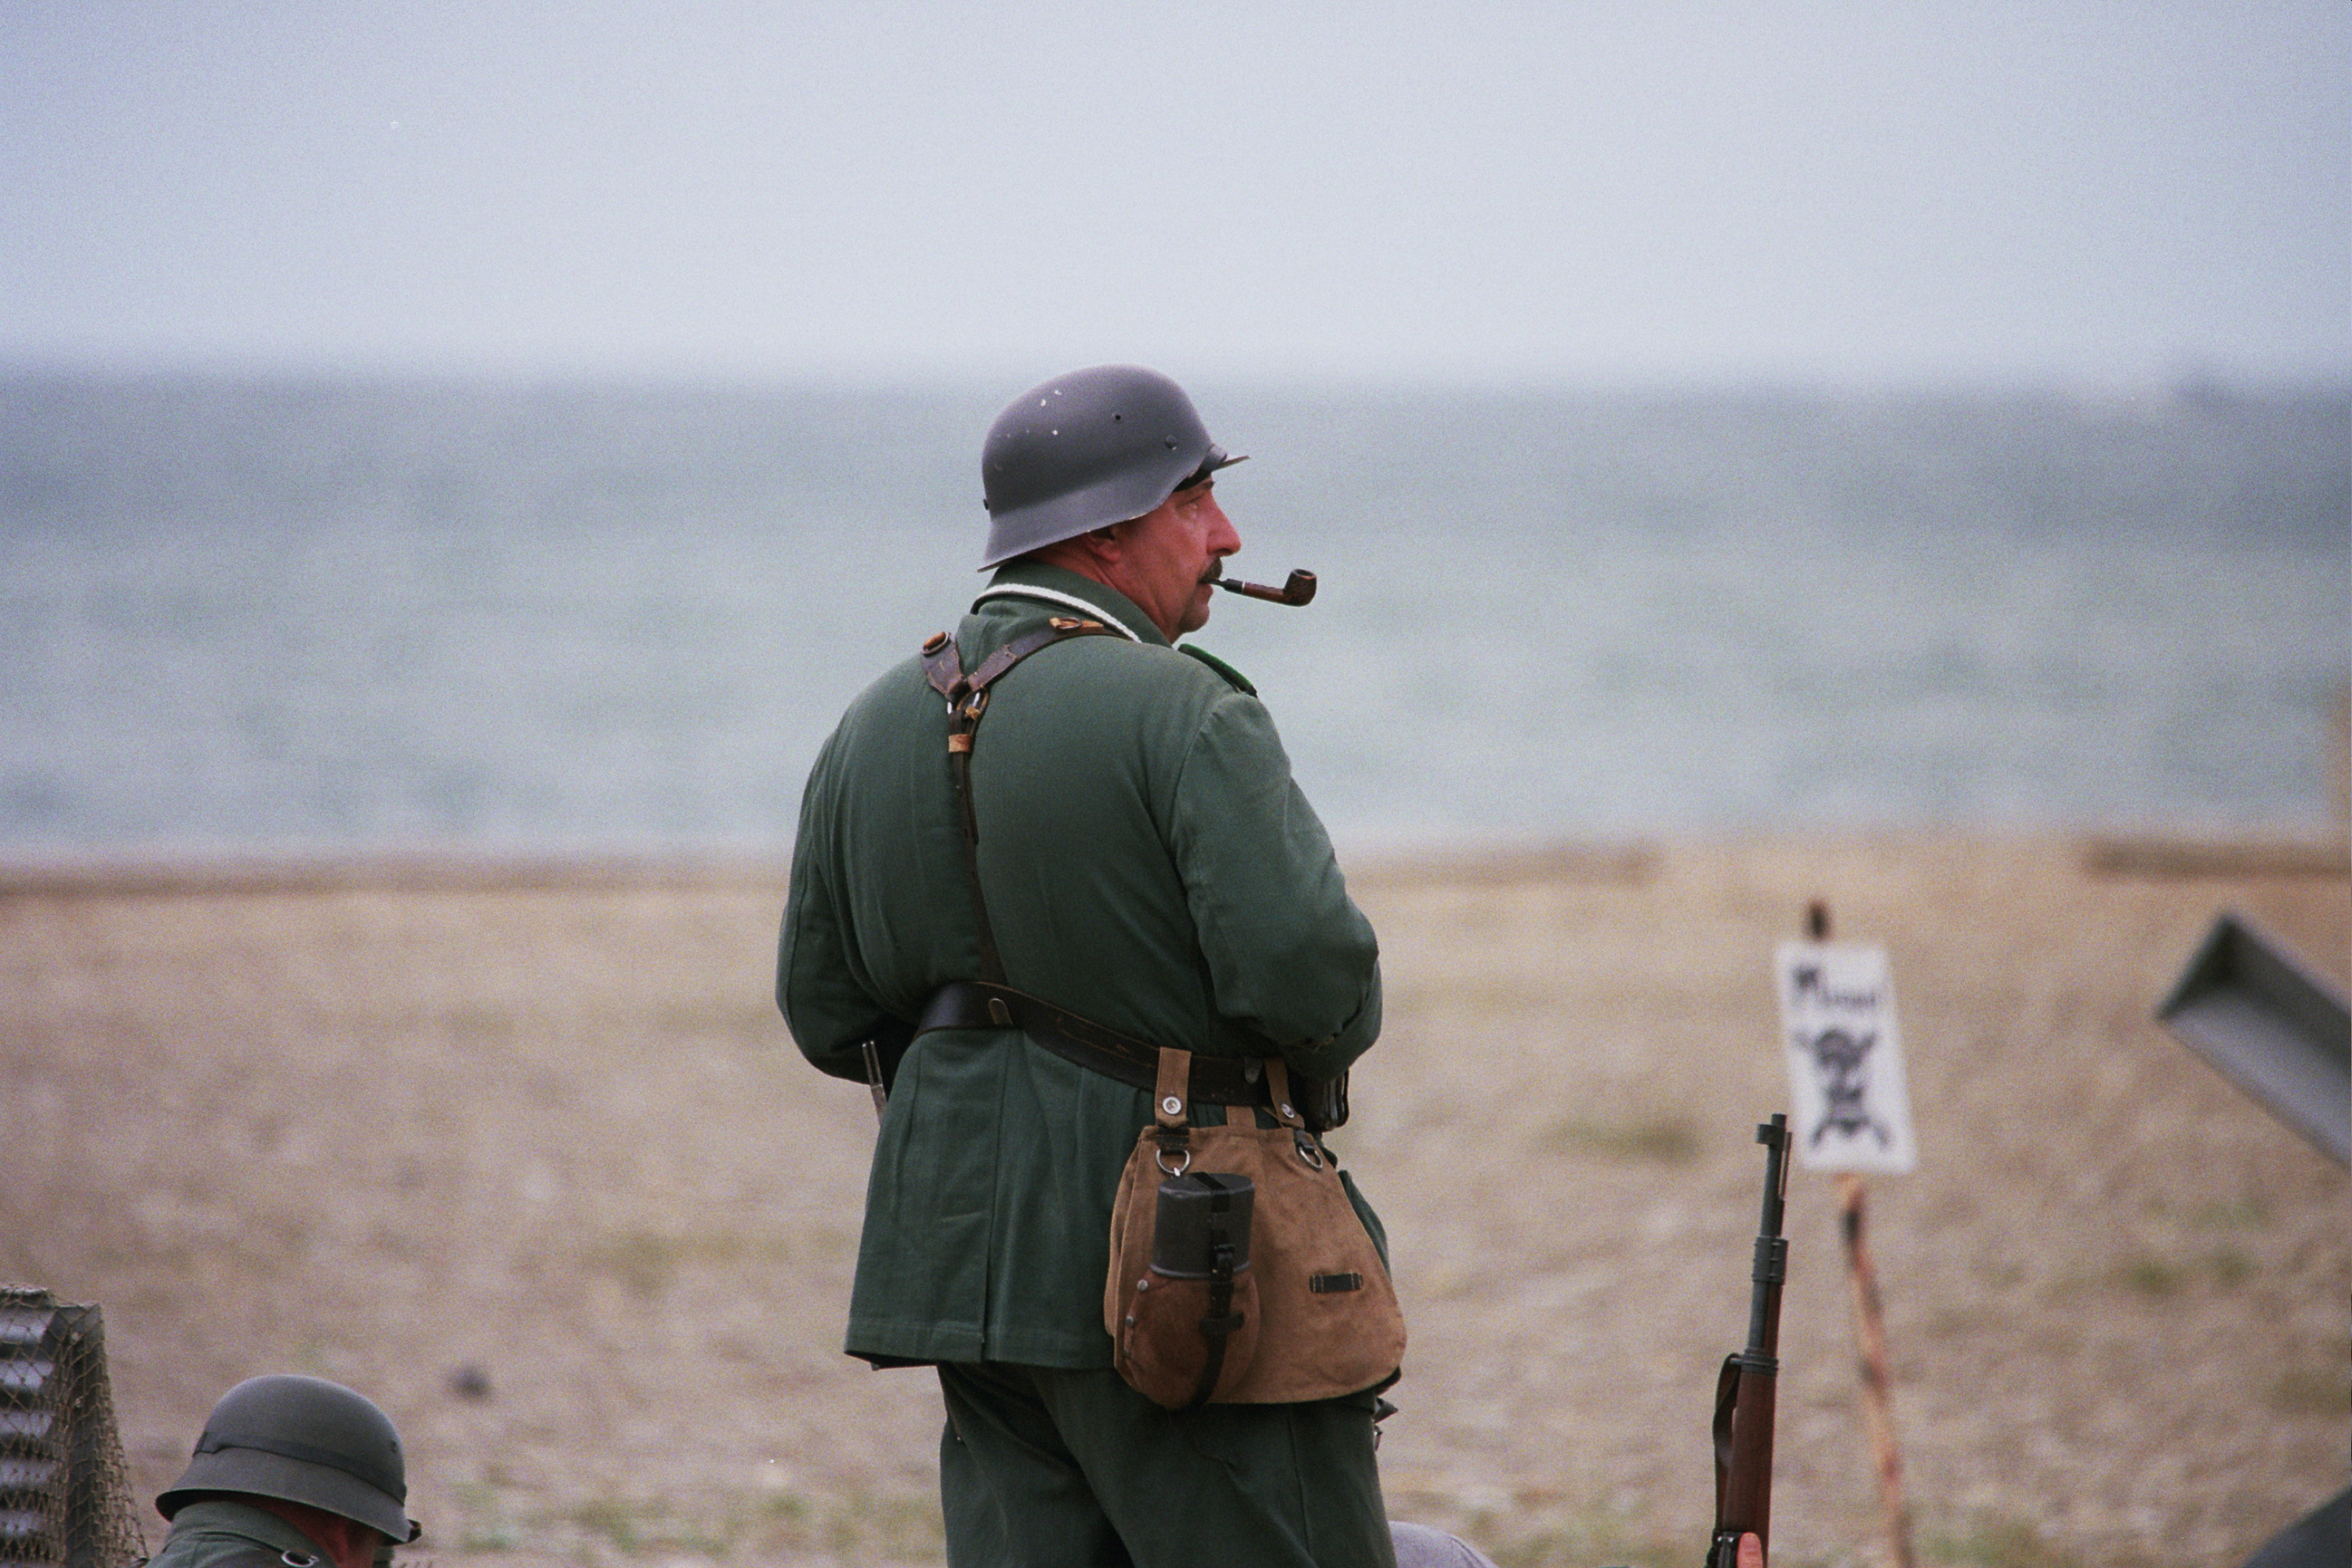 storming the beach at conneaut - a wwii reenactment